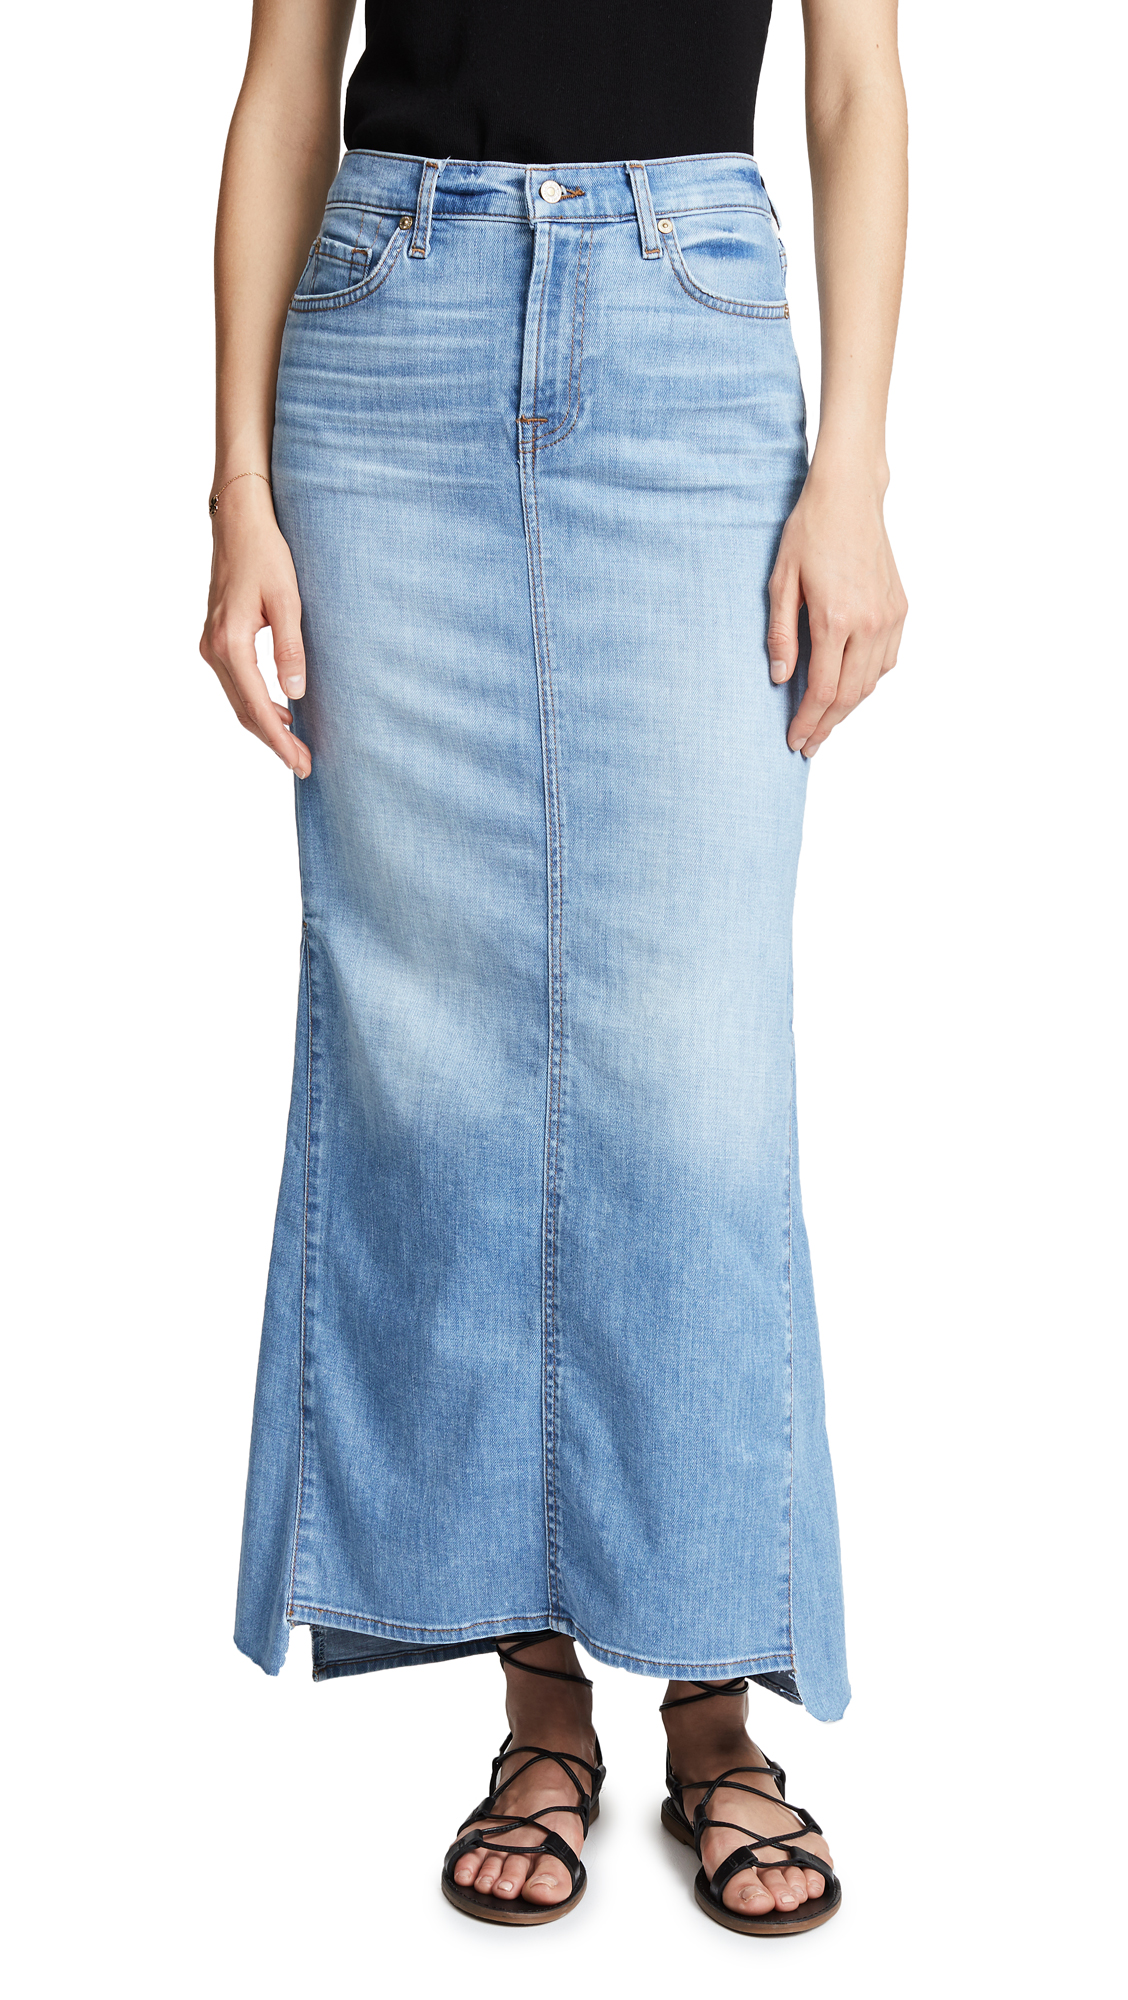 7 For All Mankind Long Maxi Skirt In Bright Blue Jay